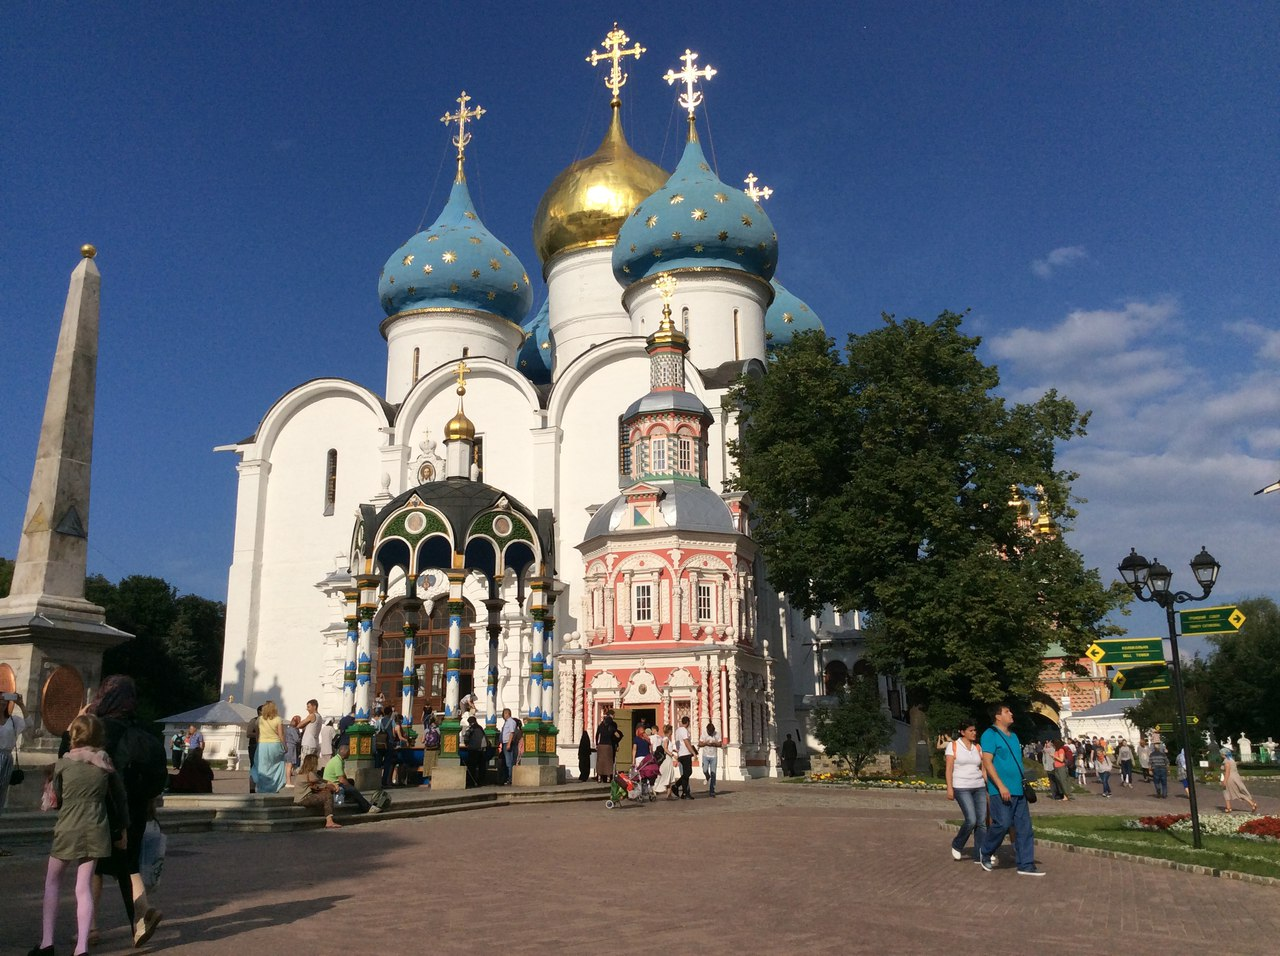 Sergiev Posad: how to get there